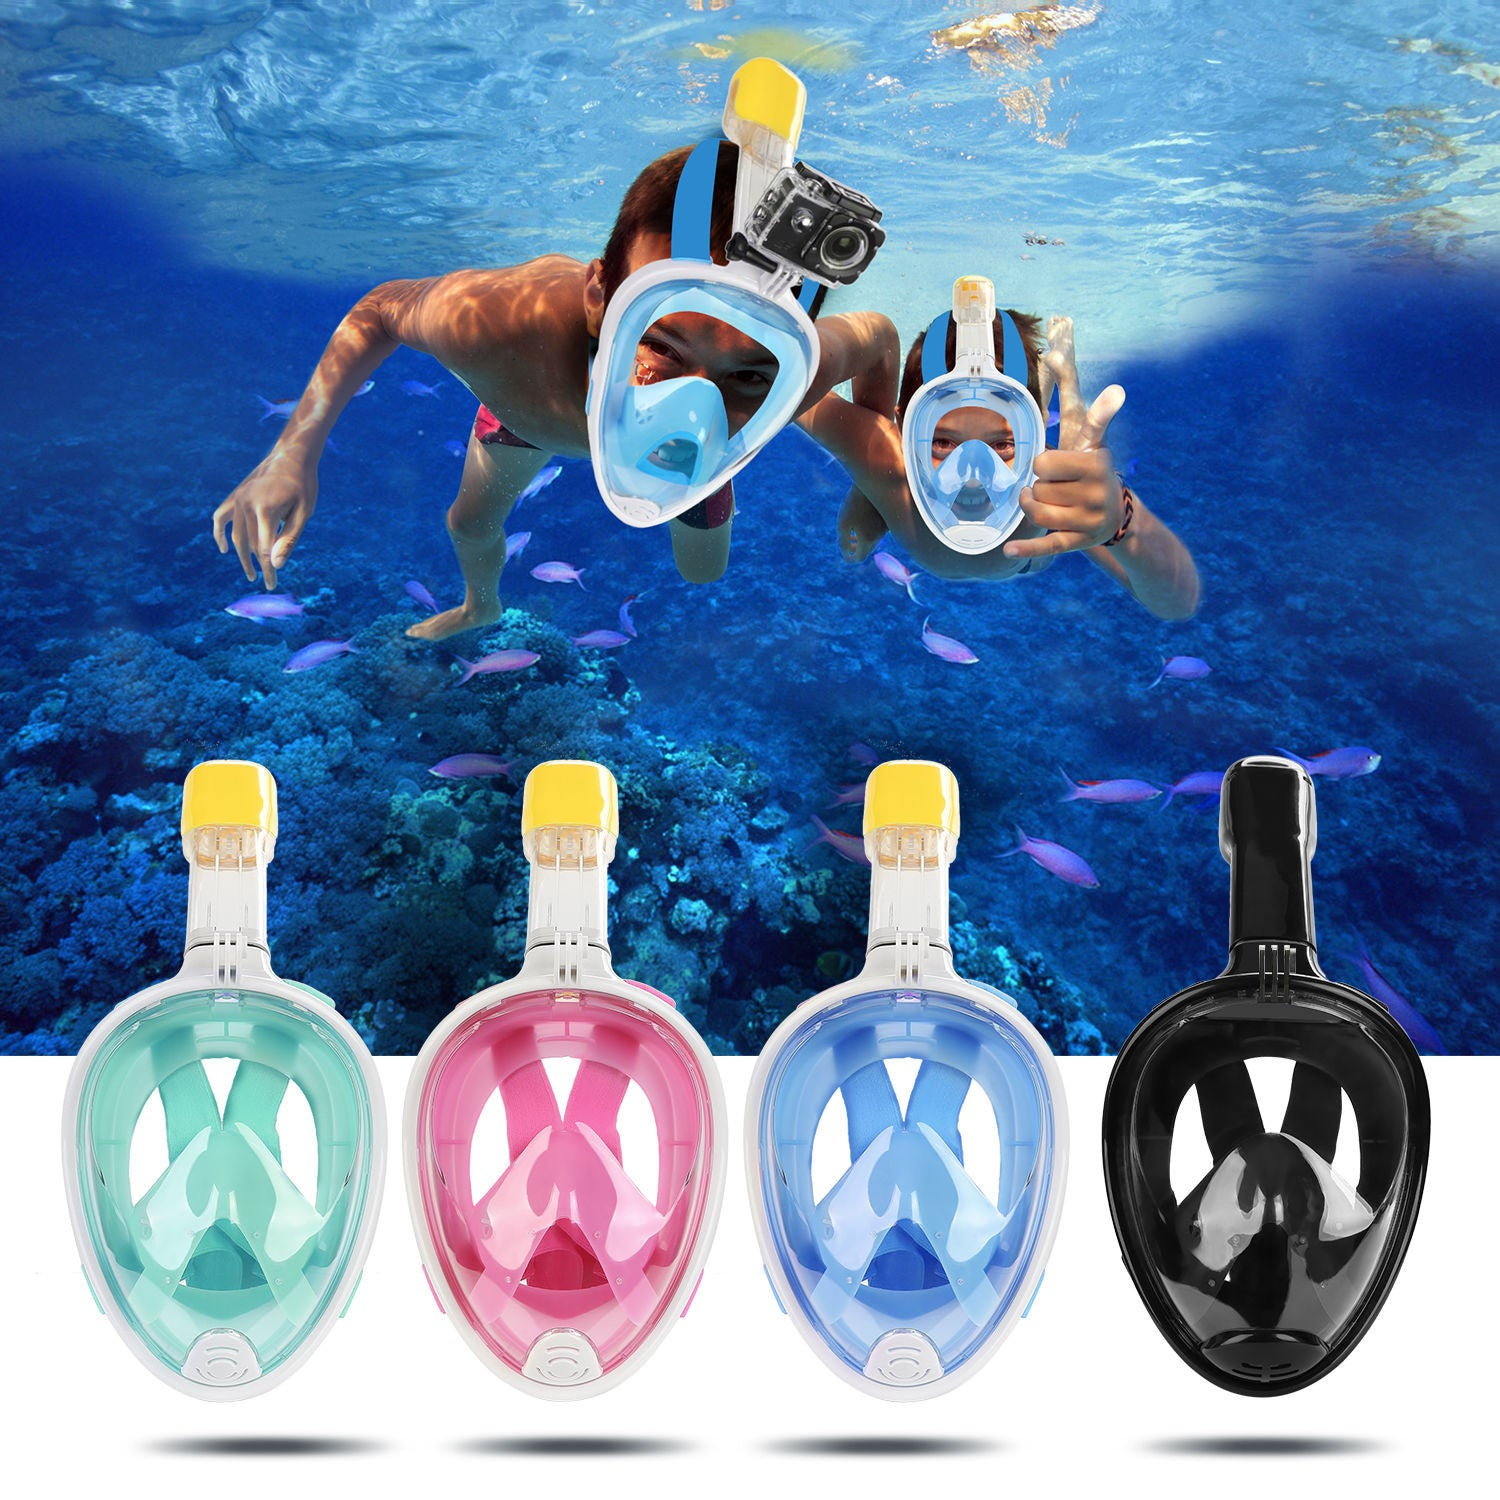 H20 180 Full Face Snorkel Mask With GoPro Mount